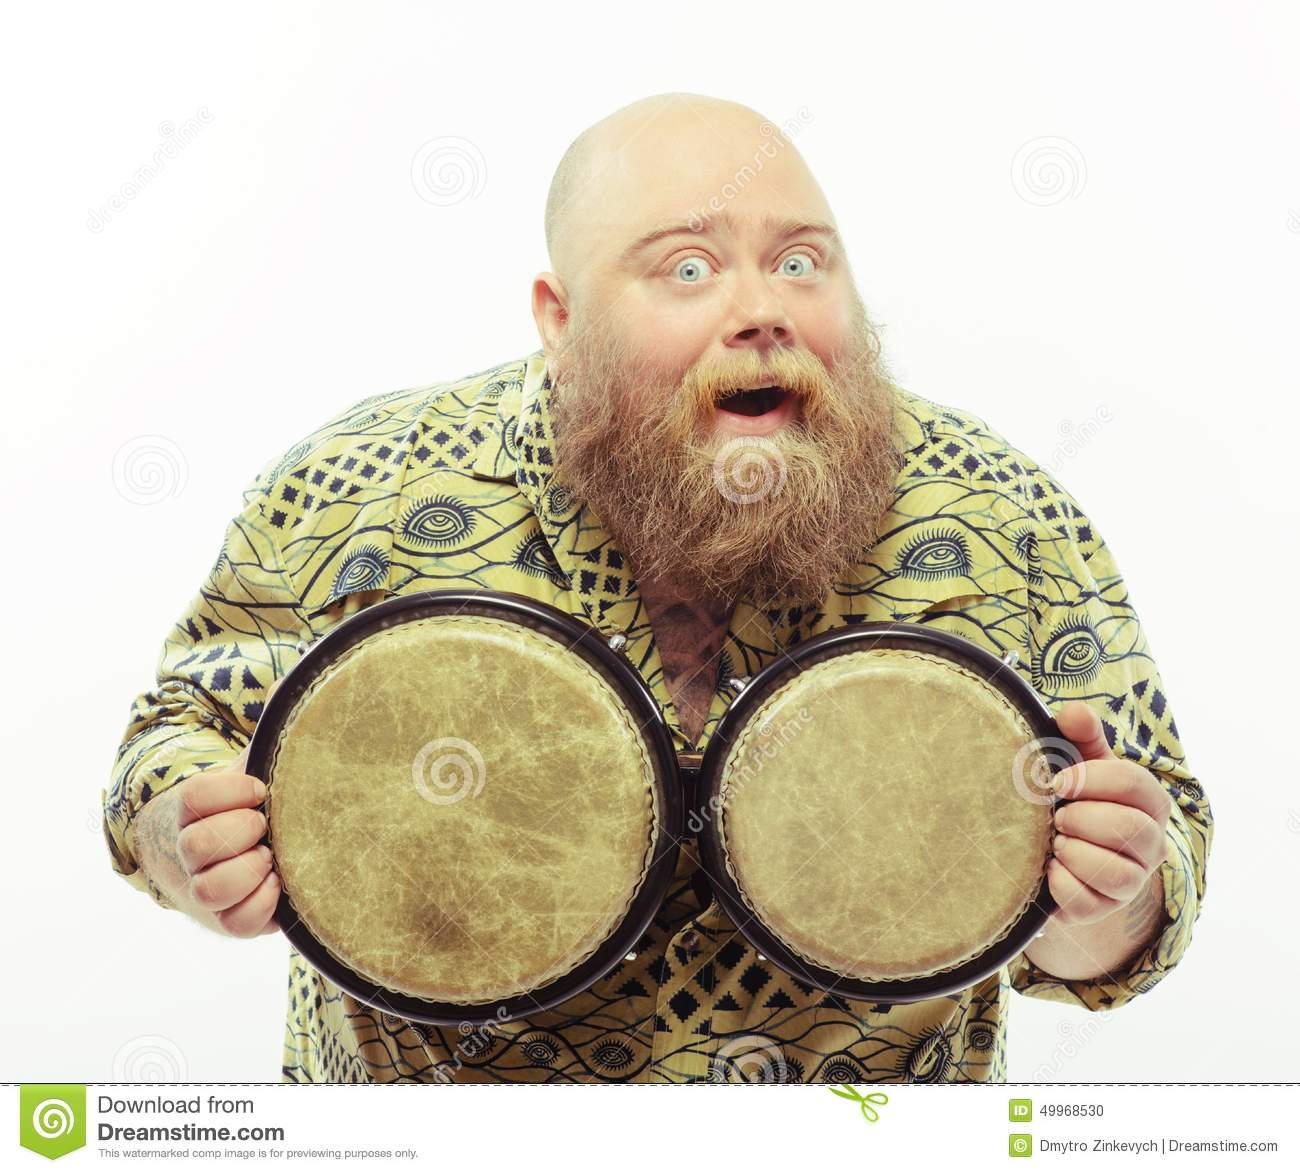 playing-drums-loving-happy-drum-player-closeup-image-funny-bearded-man-colorful-shirt-holding-african-standing-49968530.jpg